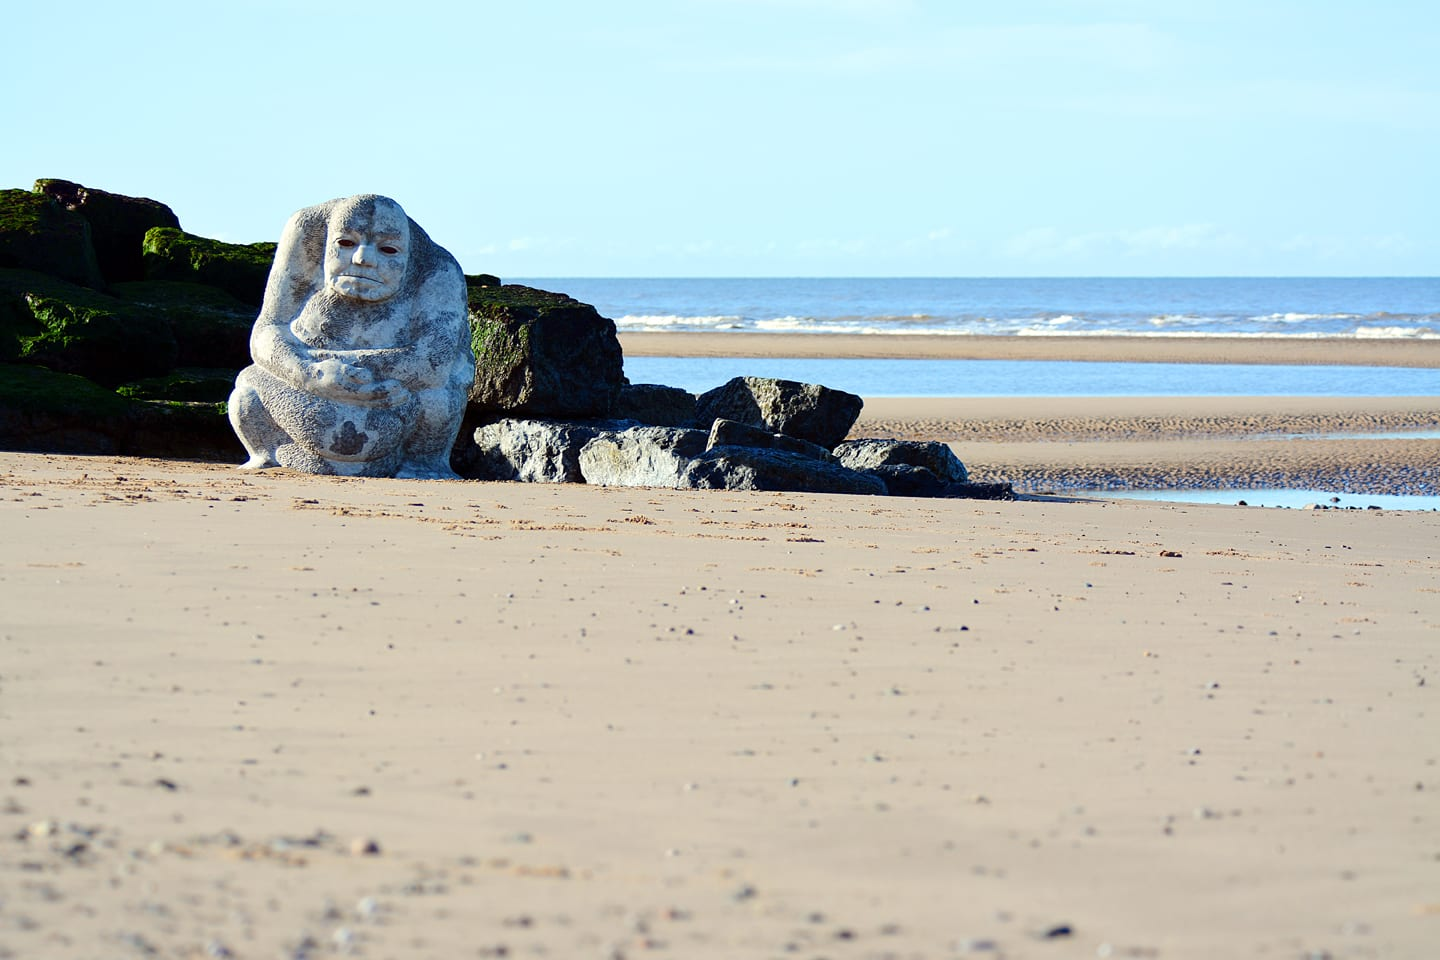 Stone Ogre on Cleveleys beach